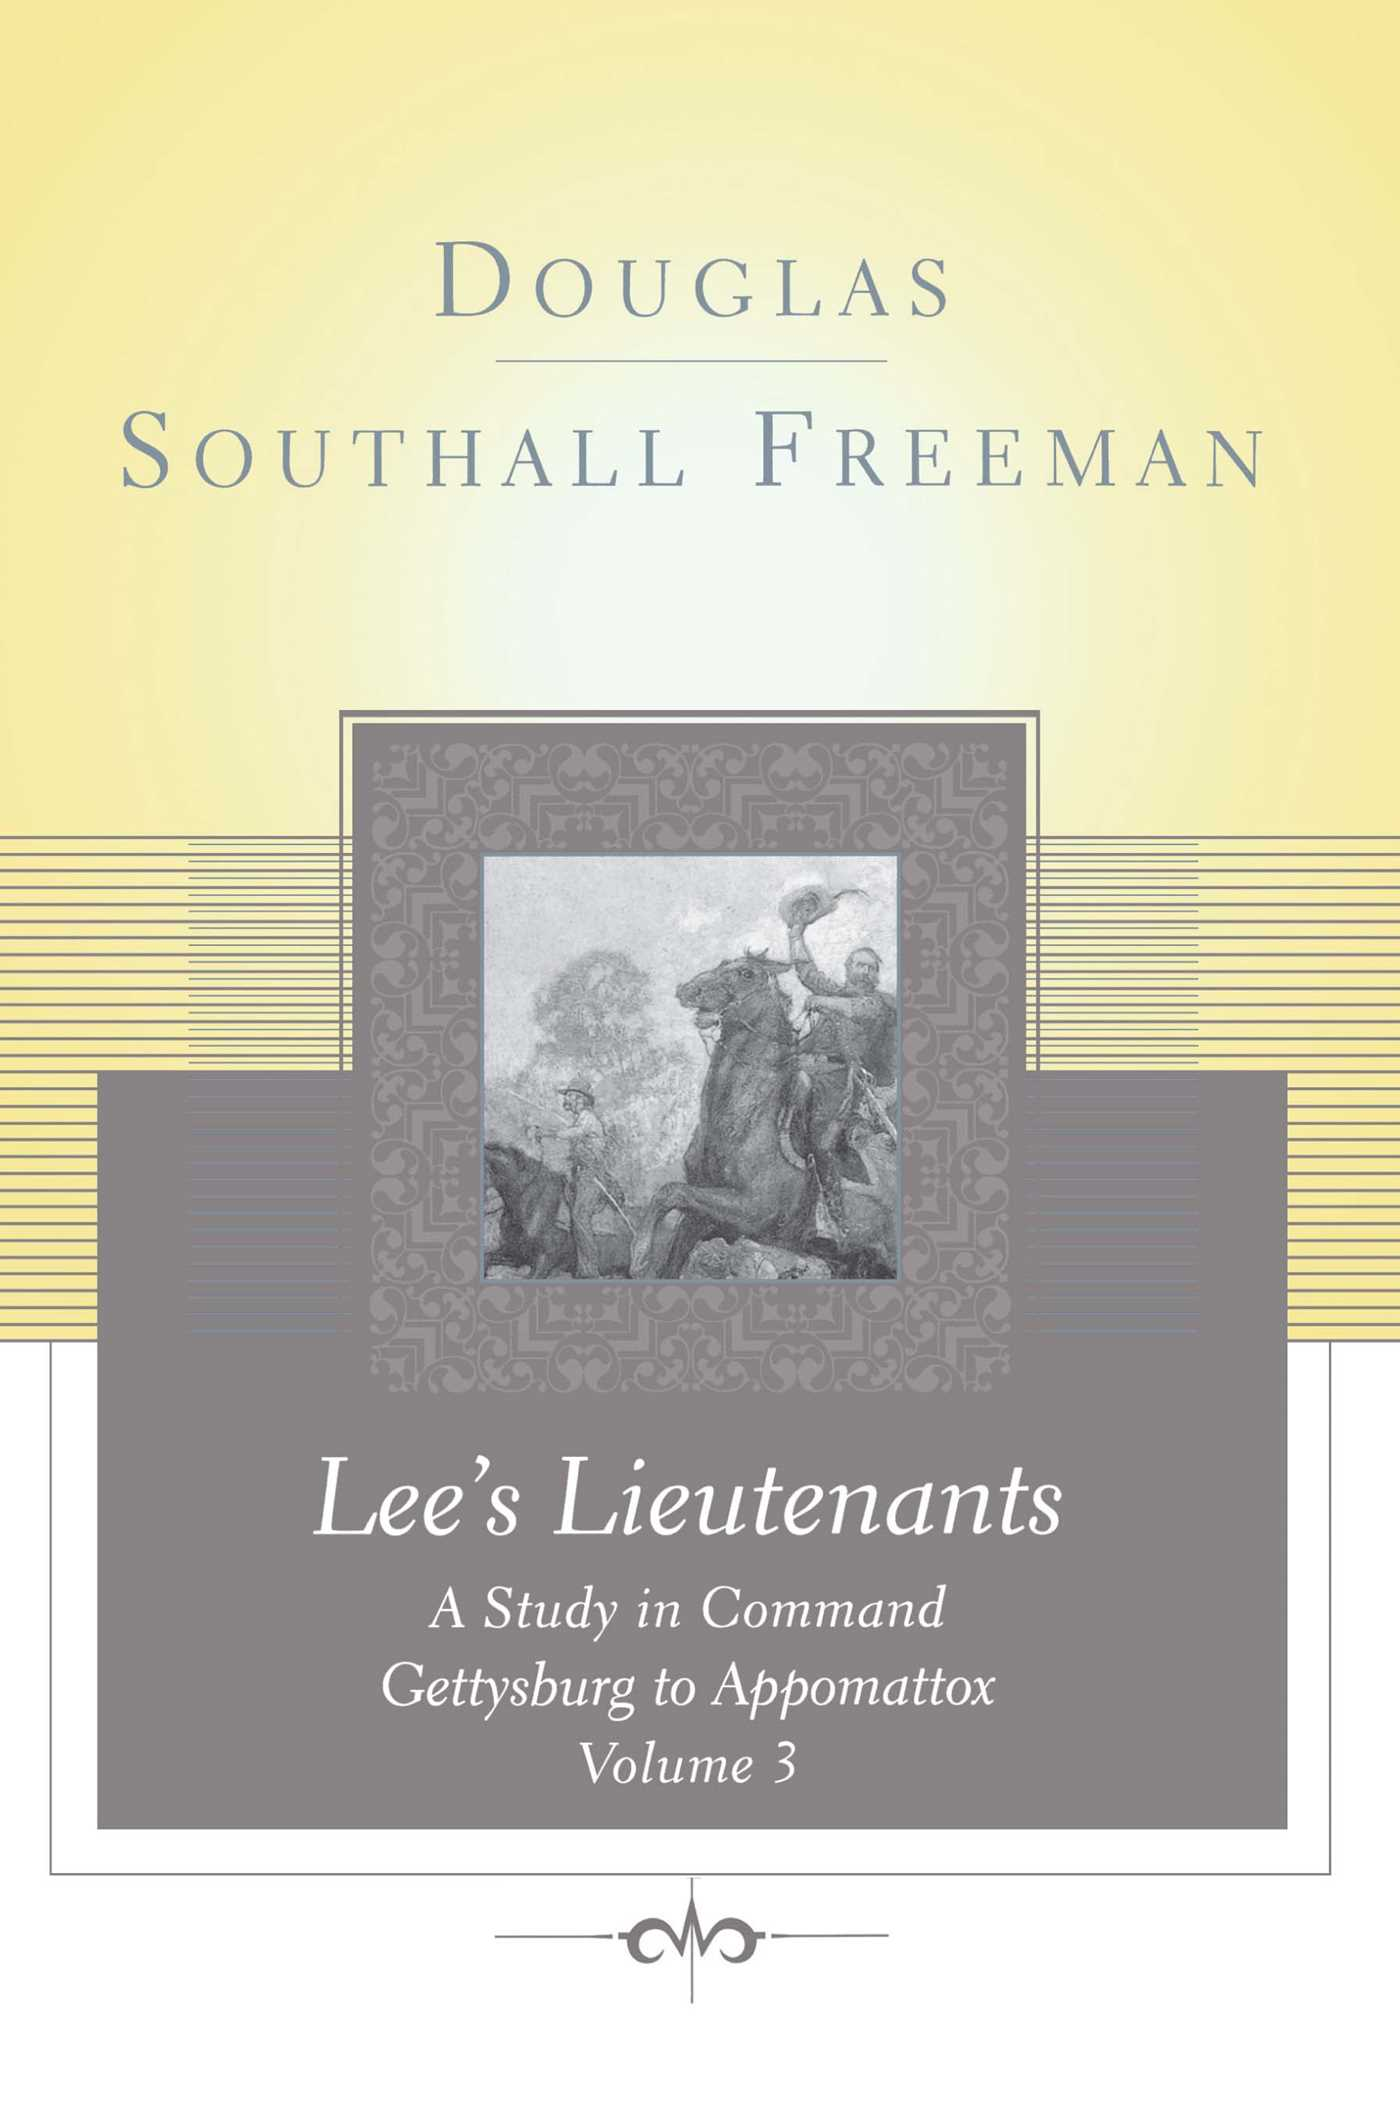 Lees-lieutenants-volume-3-9781451627343_hr